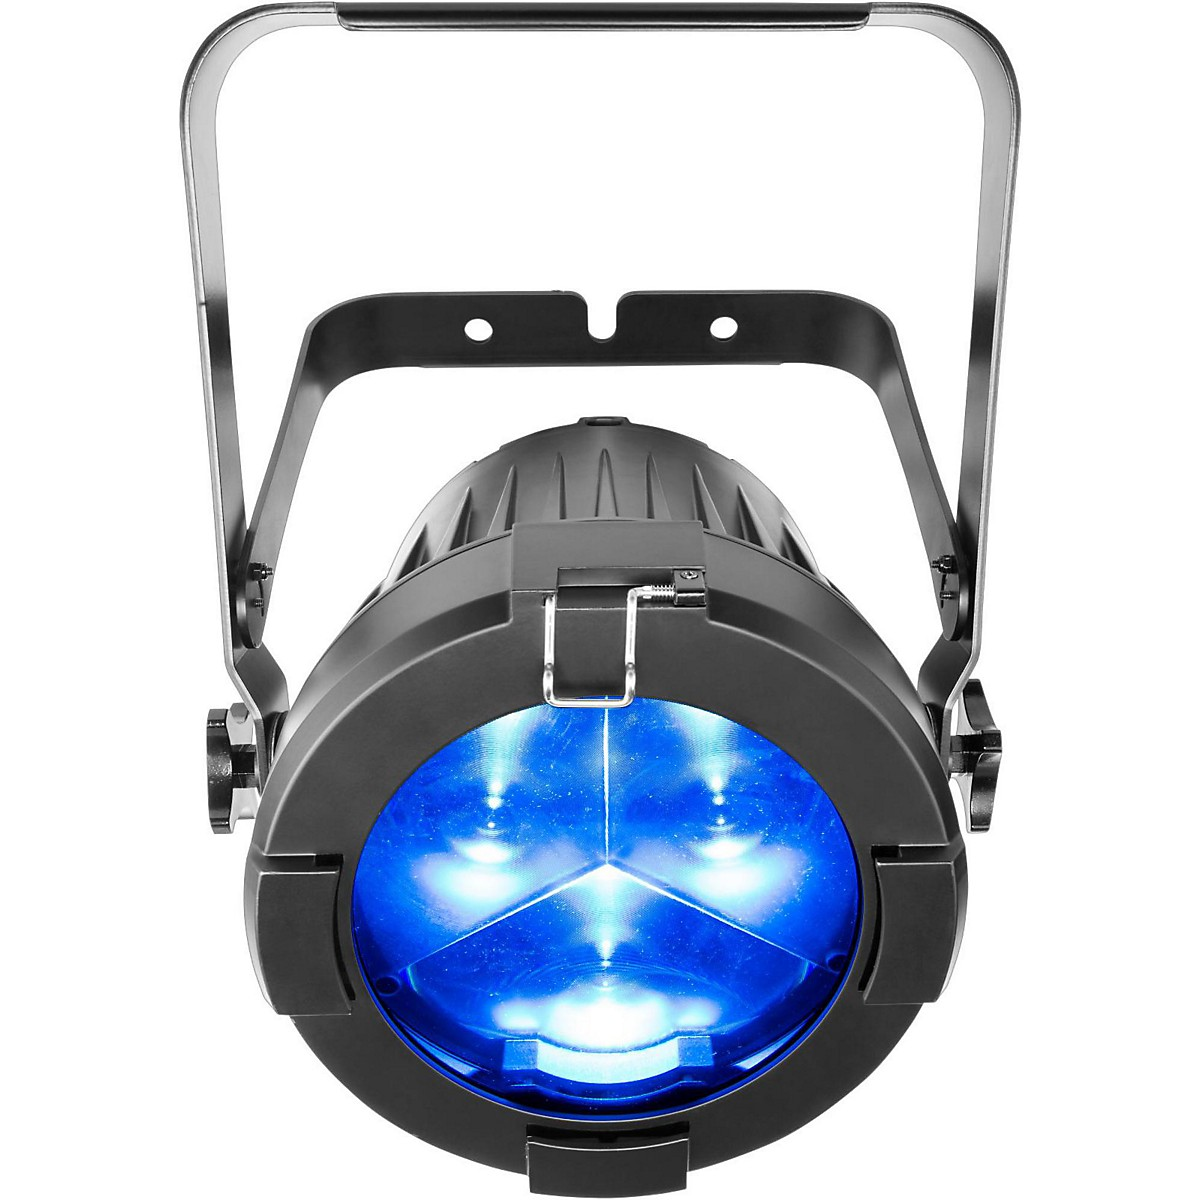 CHAUVET Professional COLORado 3 Solo RGBW LED Outdoor Zooming PAR Wash Light